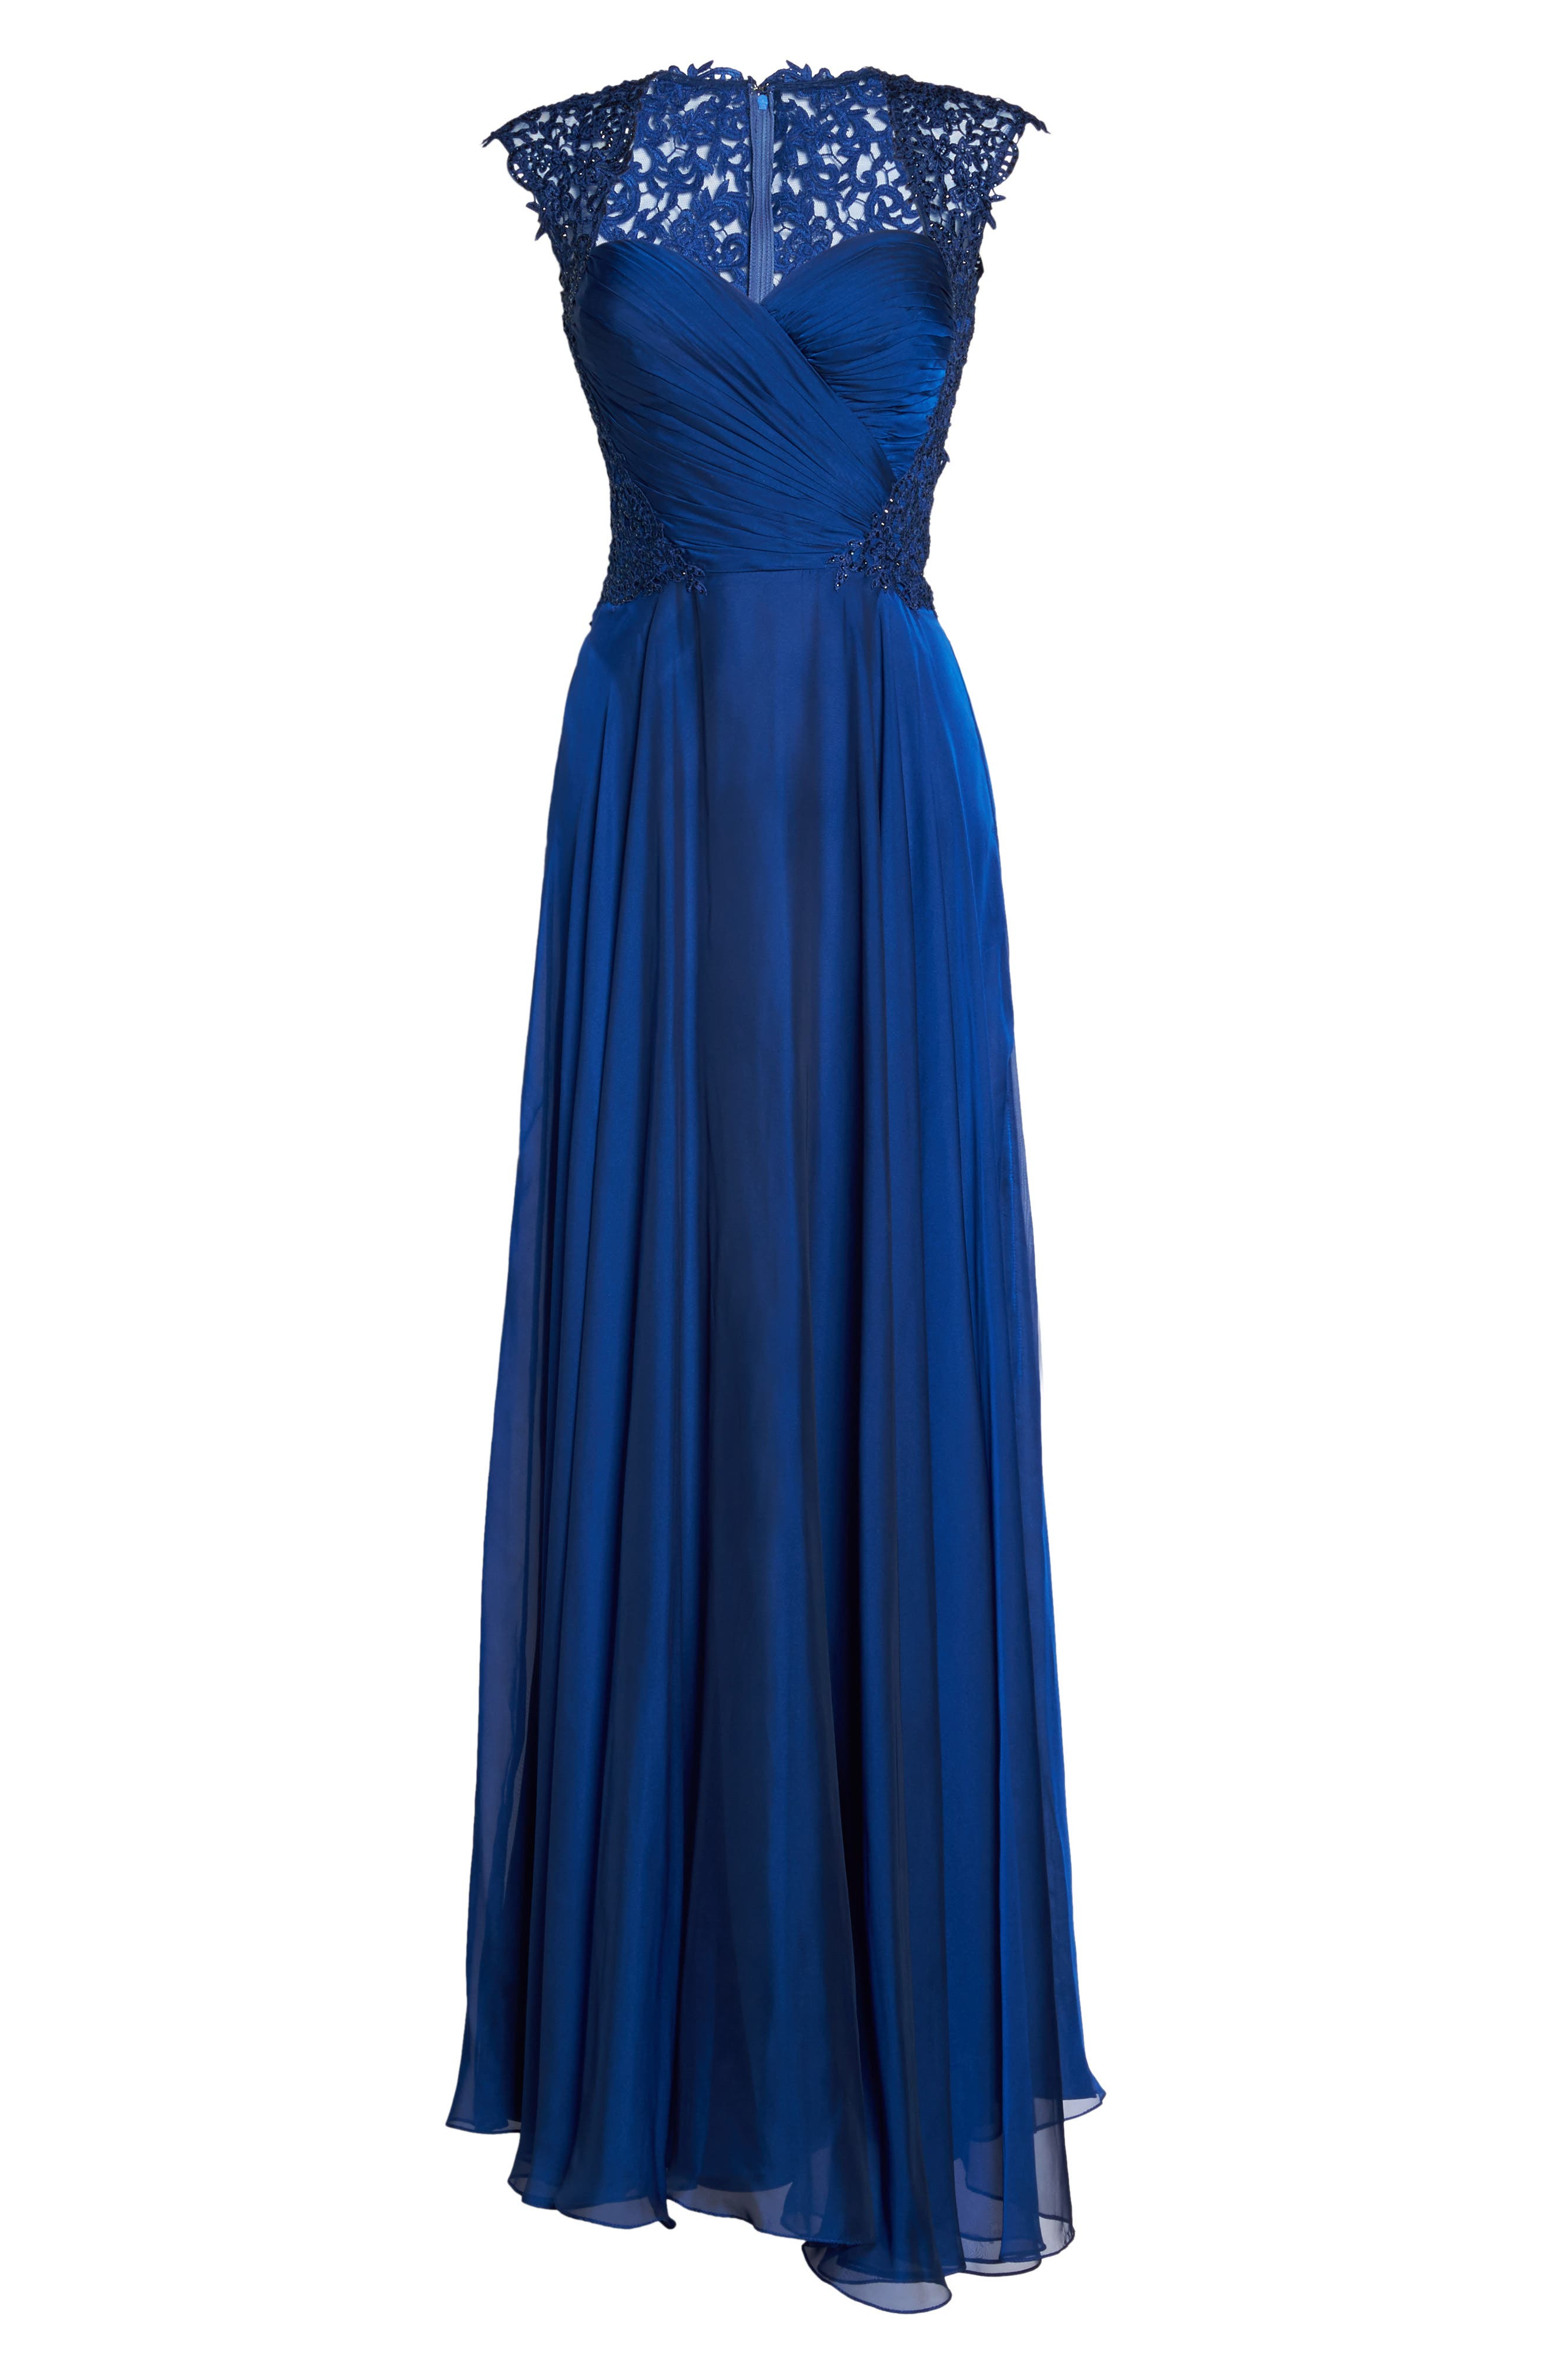 Ruched Chiffon Gown,                             Alternate thumbnail 6, color,                             Marine Blue